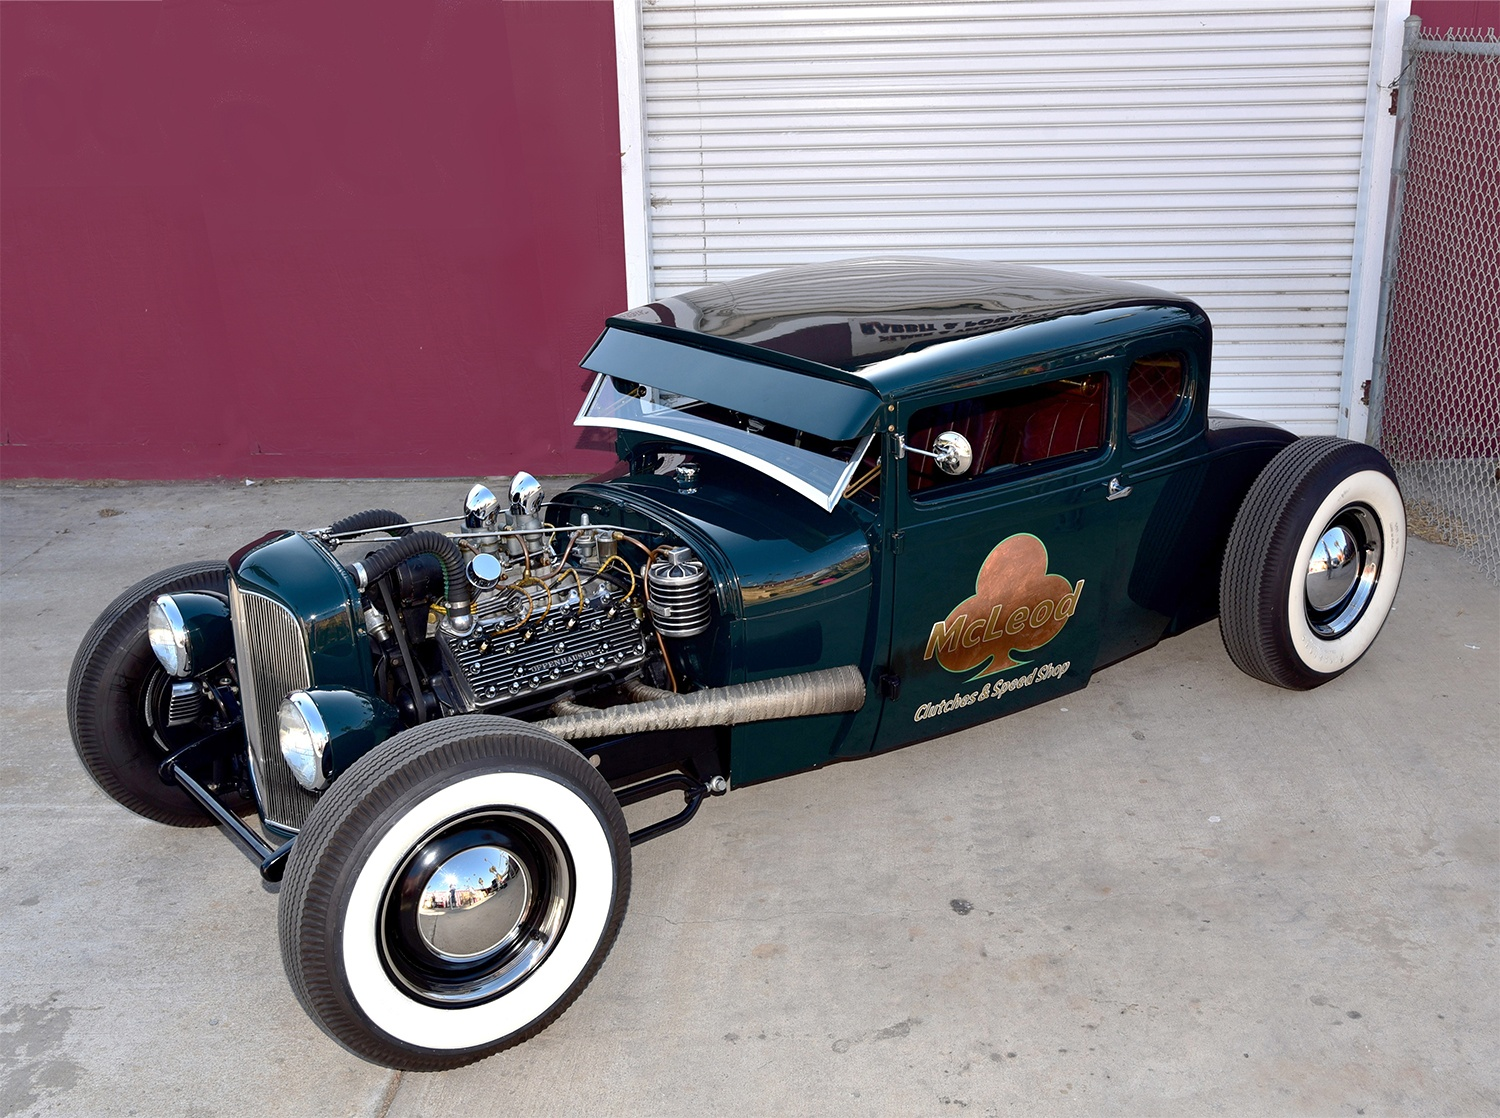 Street rod projects for sale College paper Academic Writing Service ...